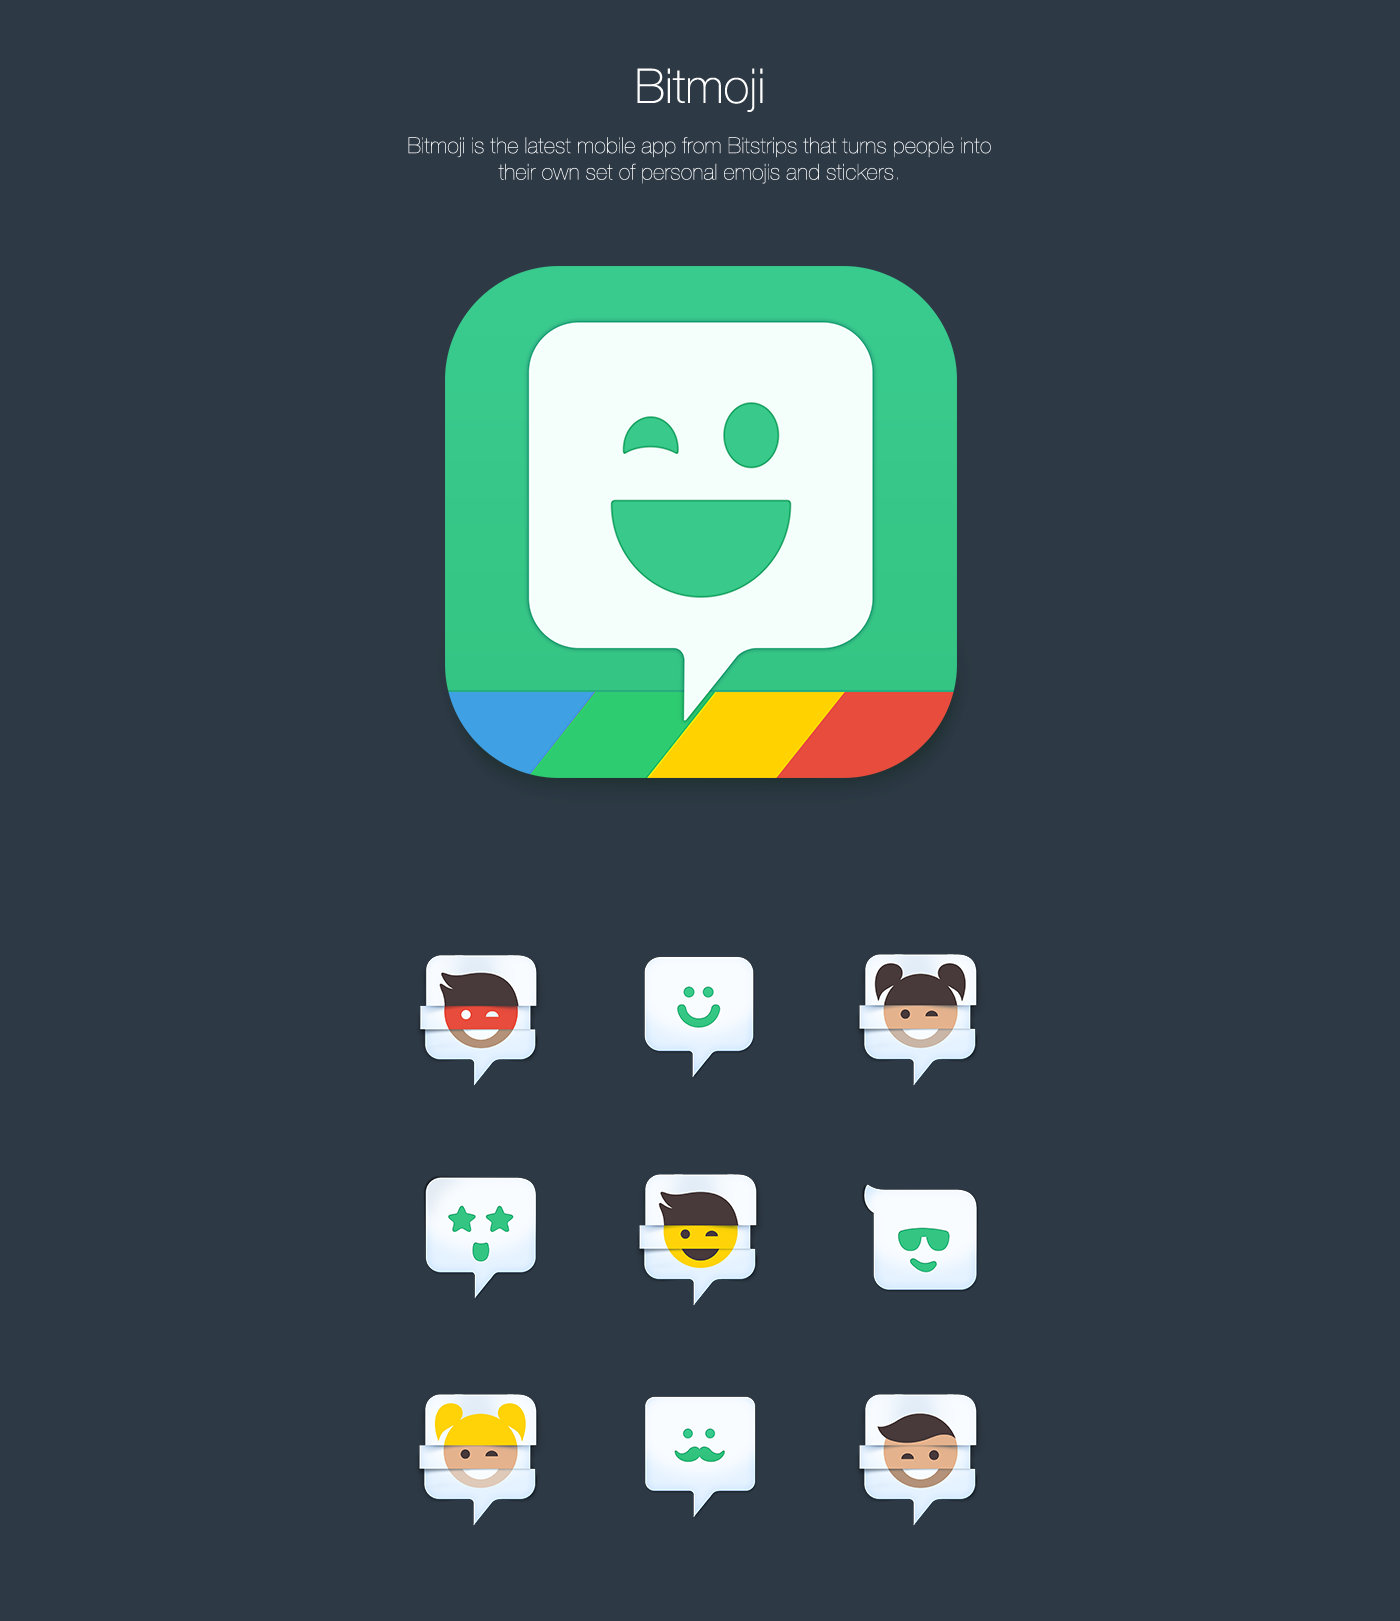 Best App Icons by Ramotion on Behance.